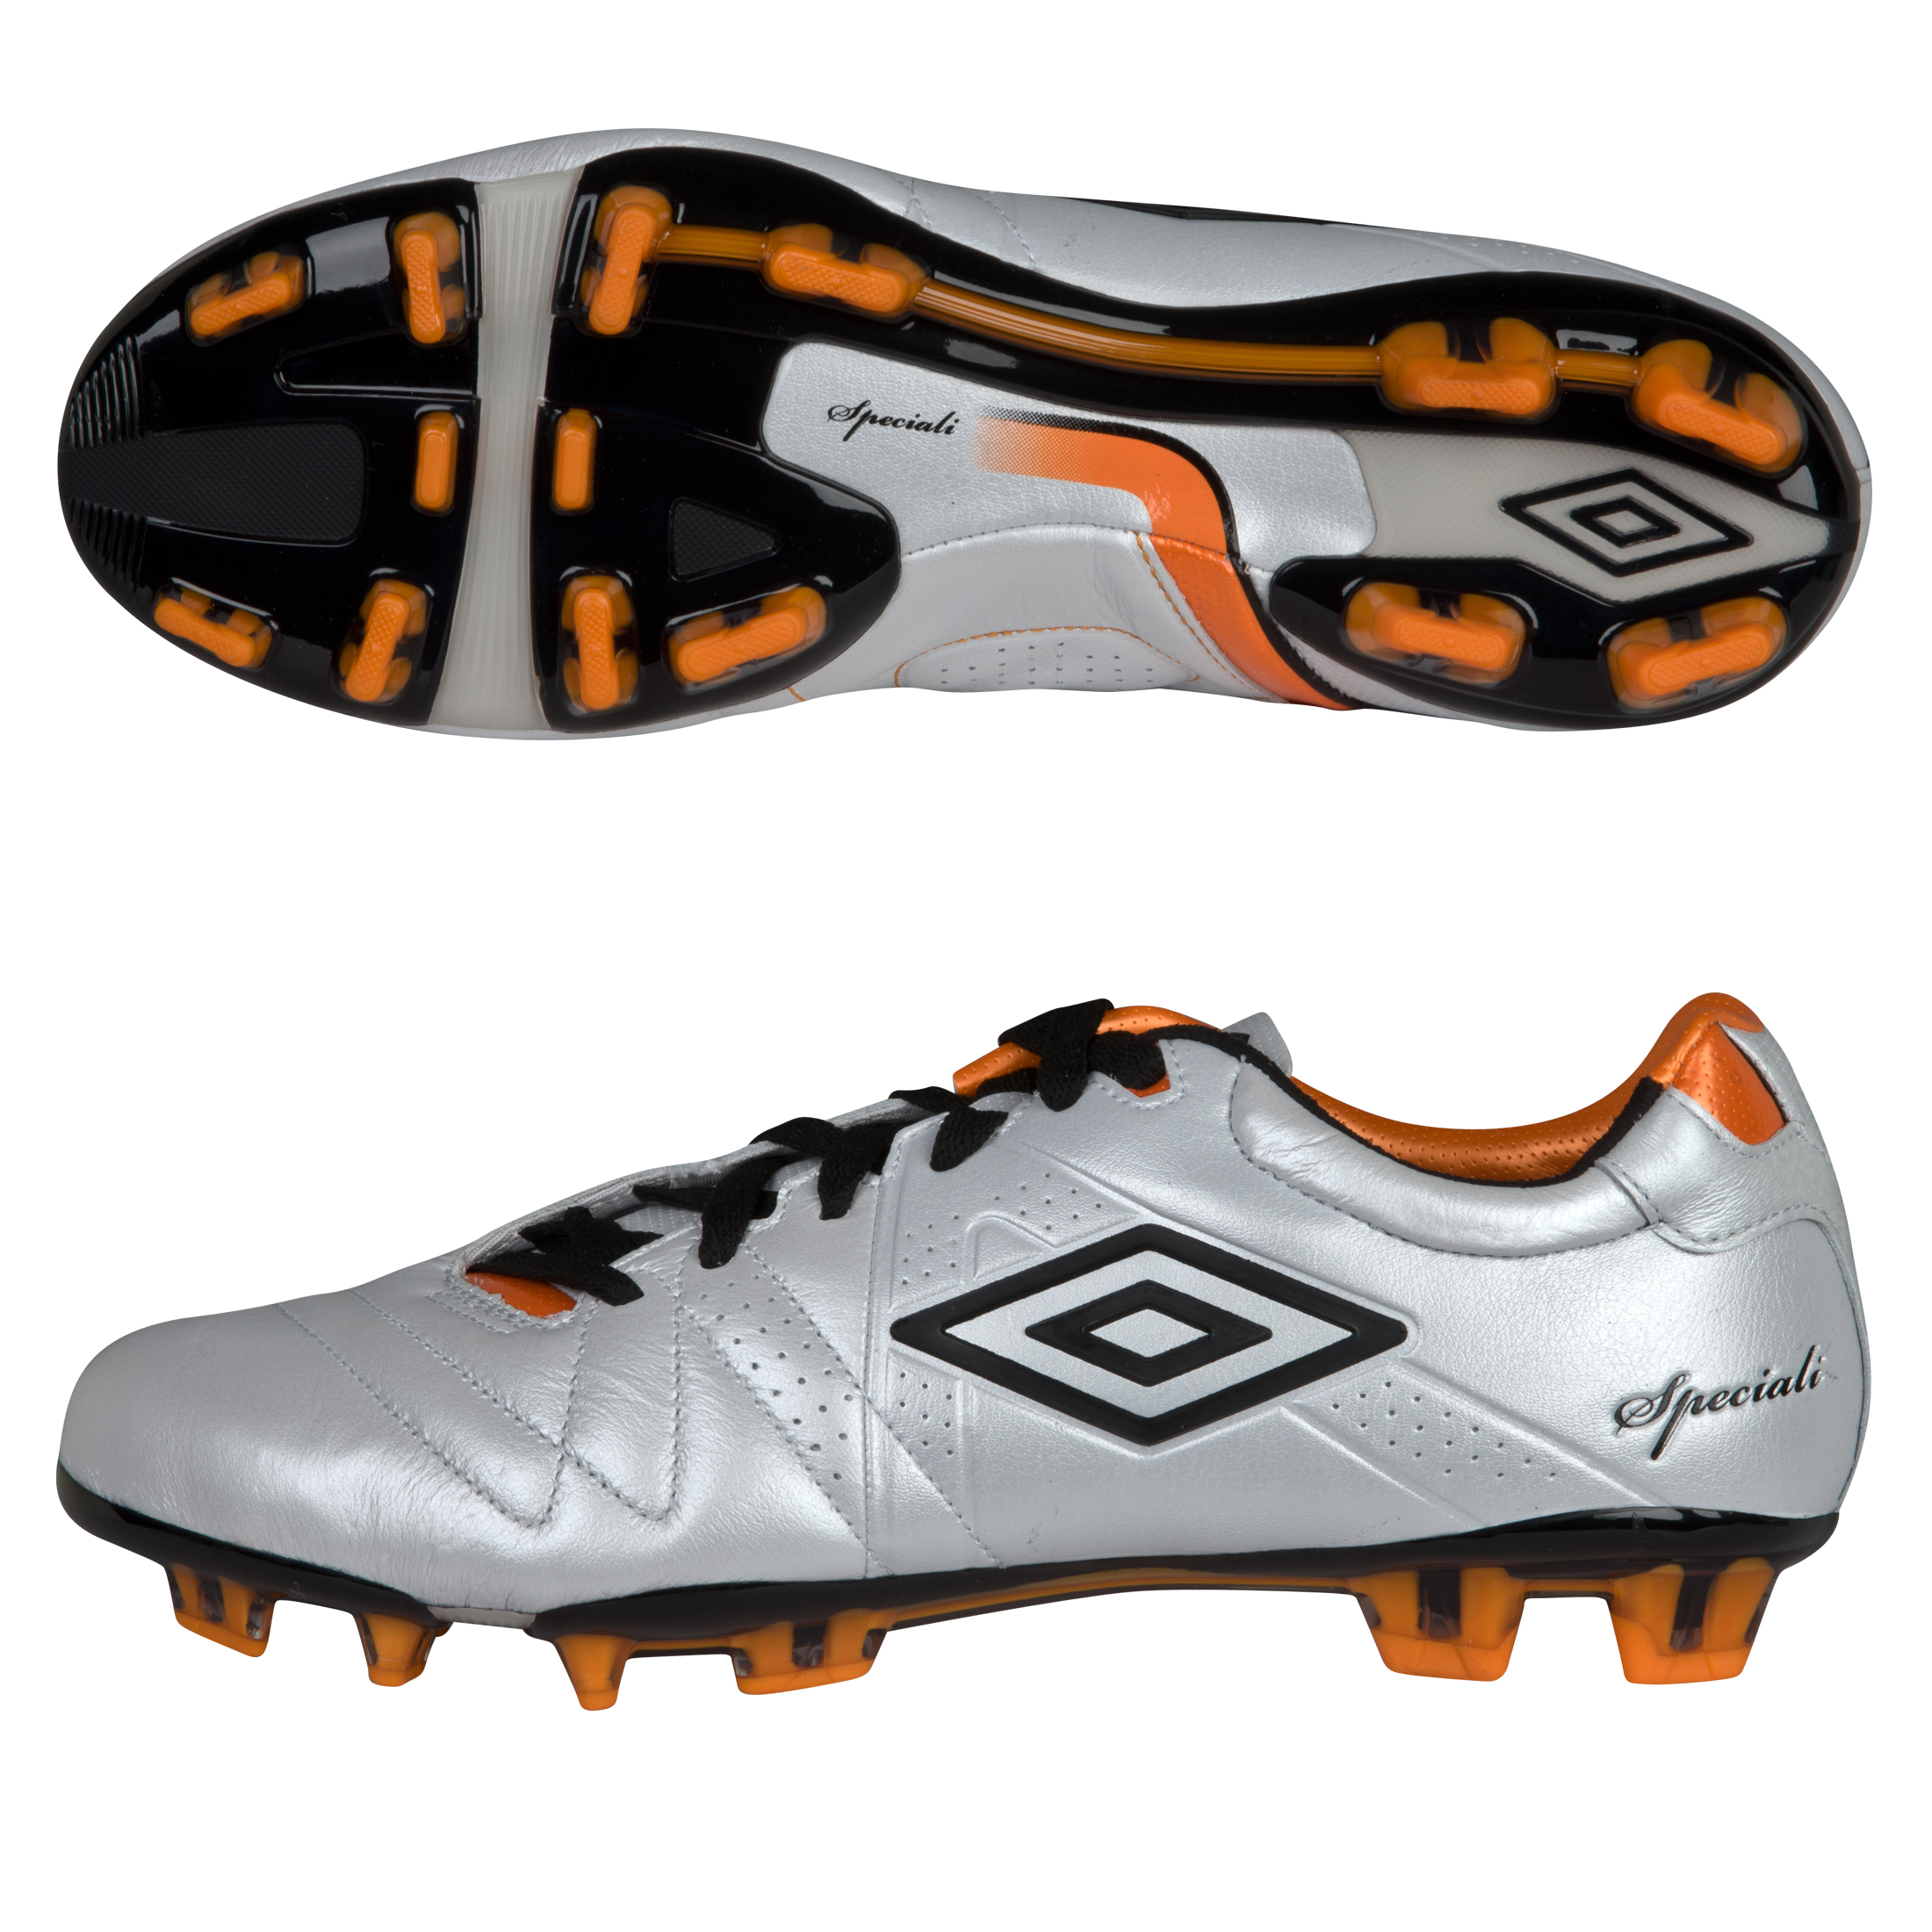 Umbro Speciali 3 Pro Firm Ground Football Boots - Pearlised White/Black/Necterine